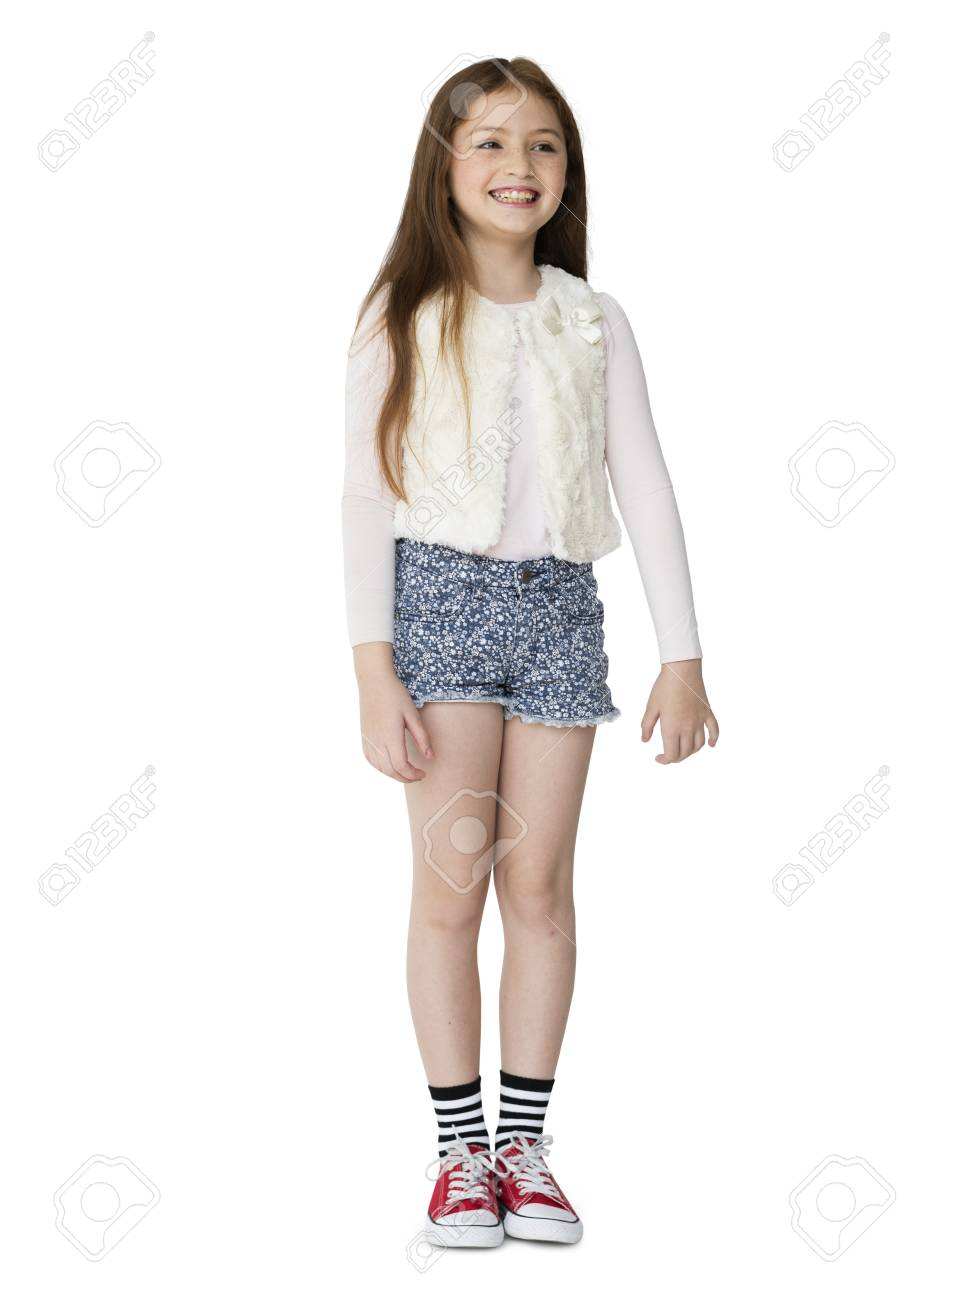 Stock photo young girl cheerful smile full body portrait